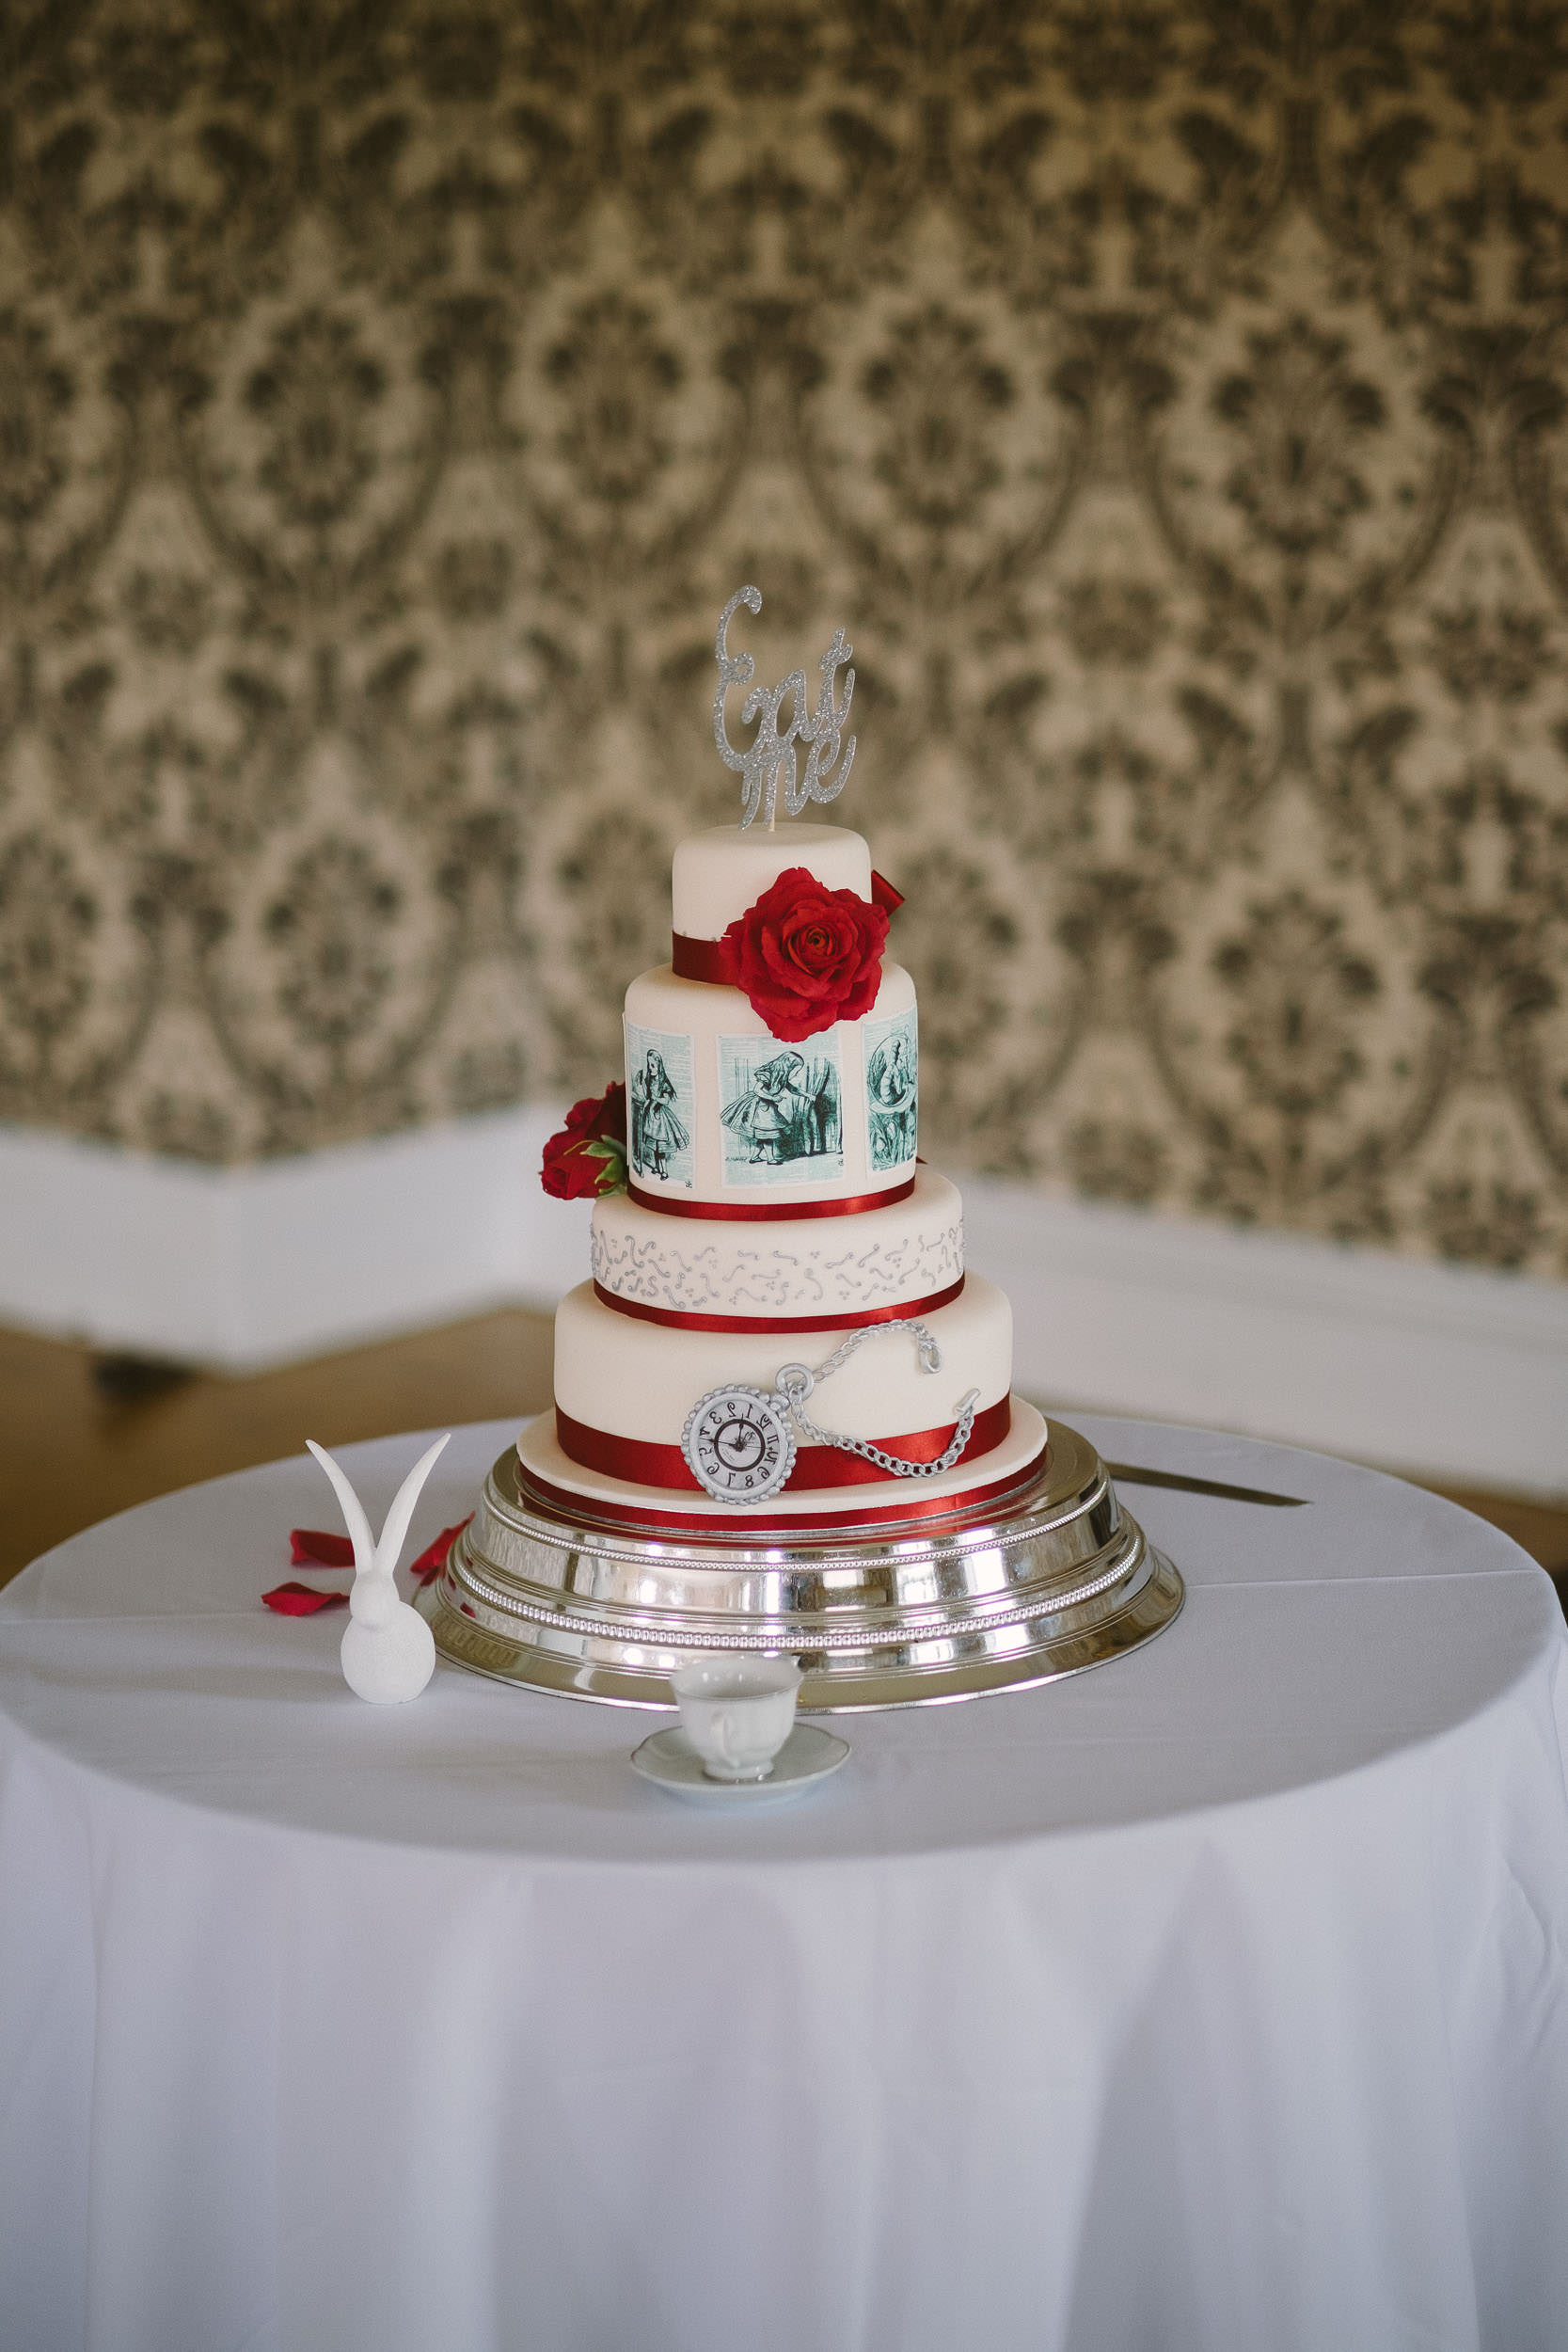 Wedding cake with Eat Me topper sign